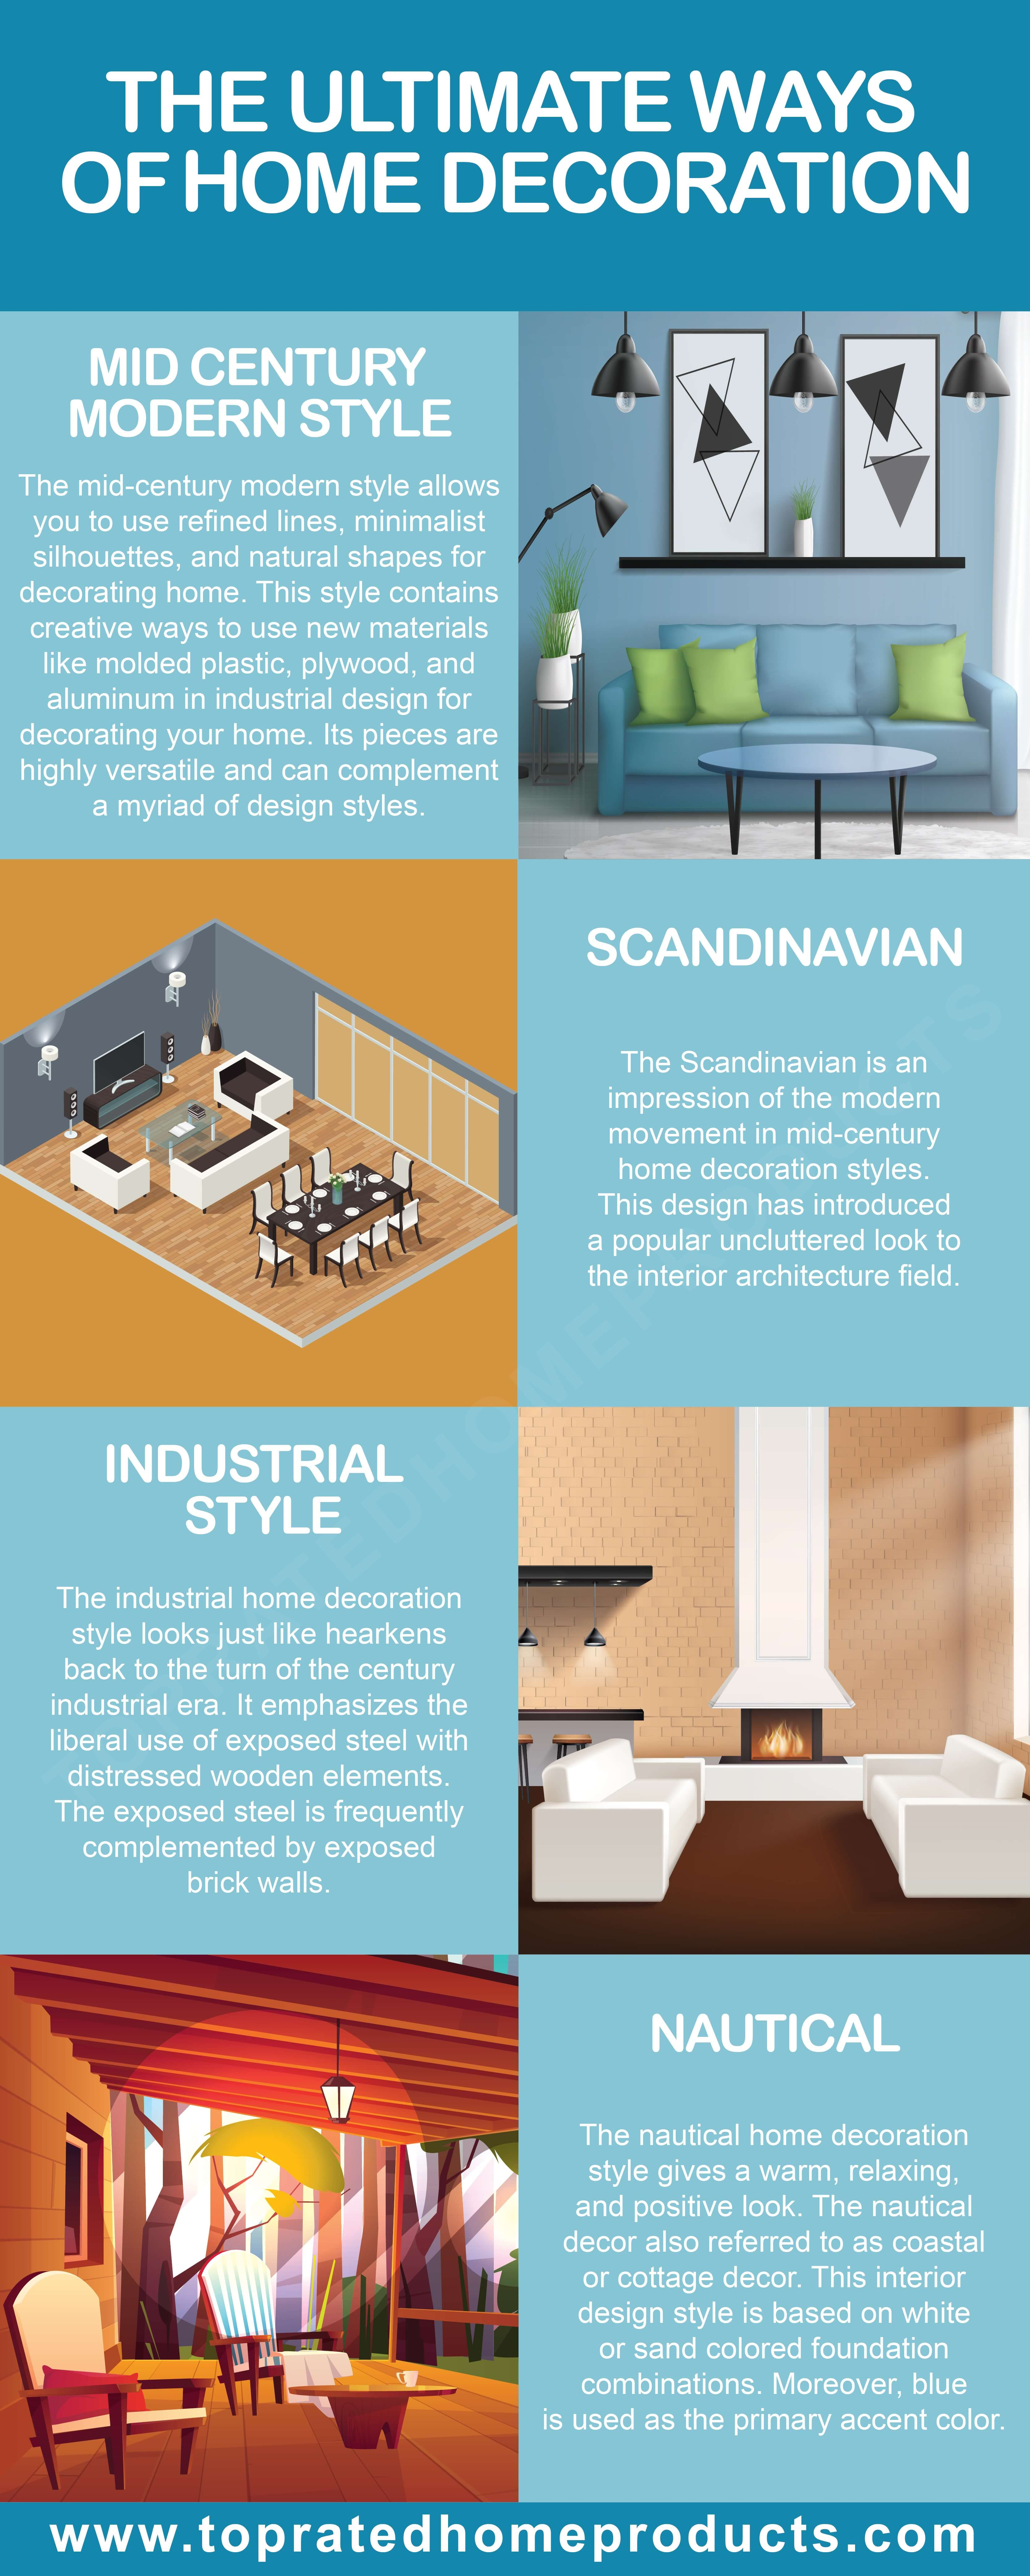 Ultimate ways of decorating your entire home - TopratedHomeProducts